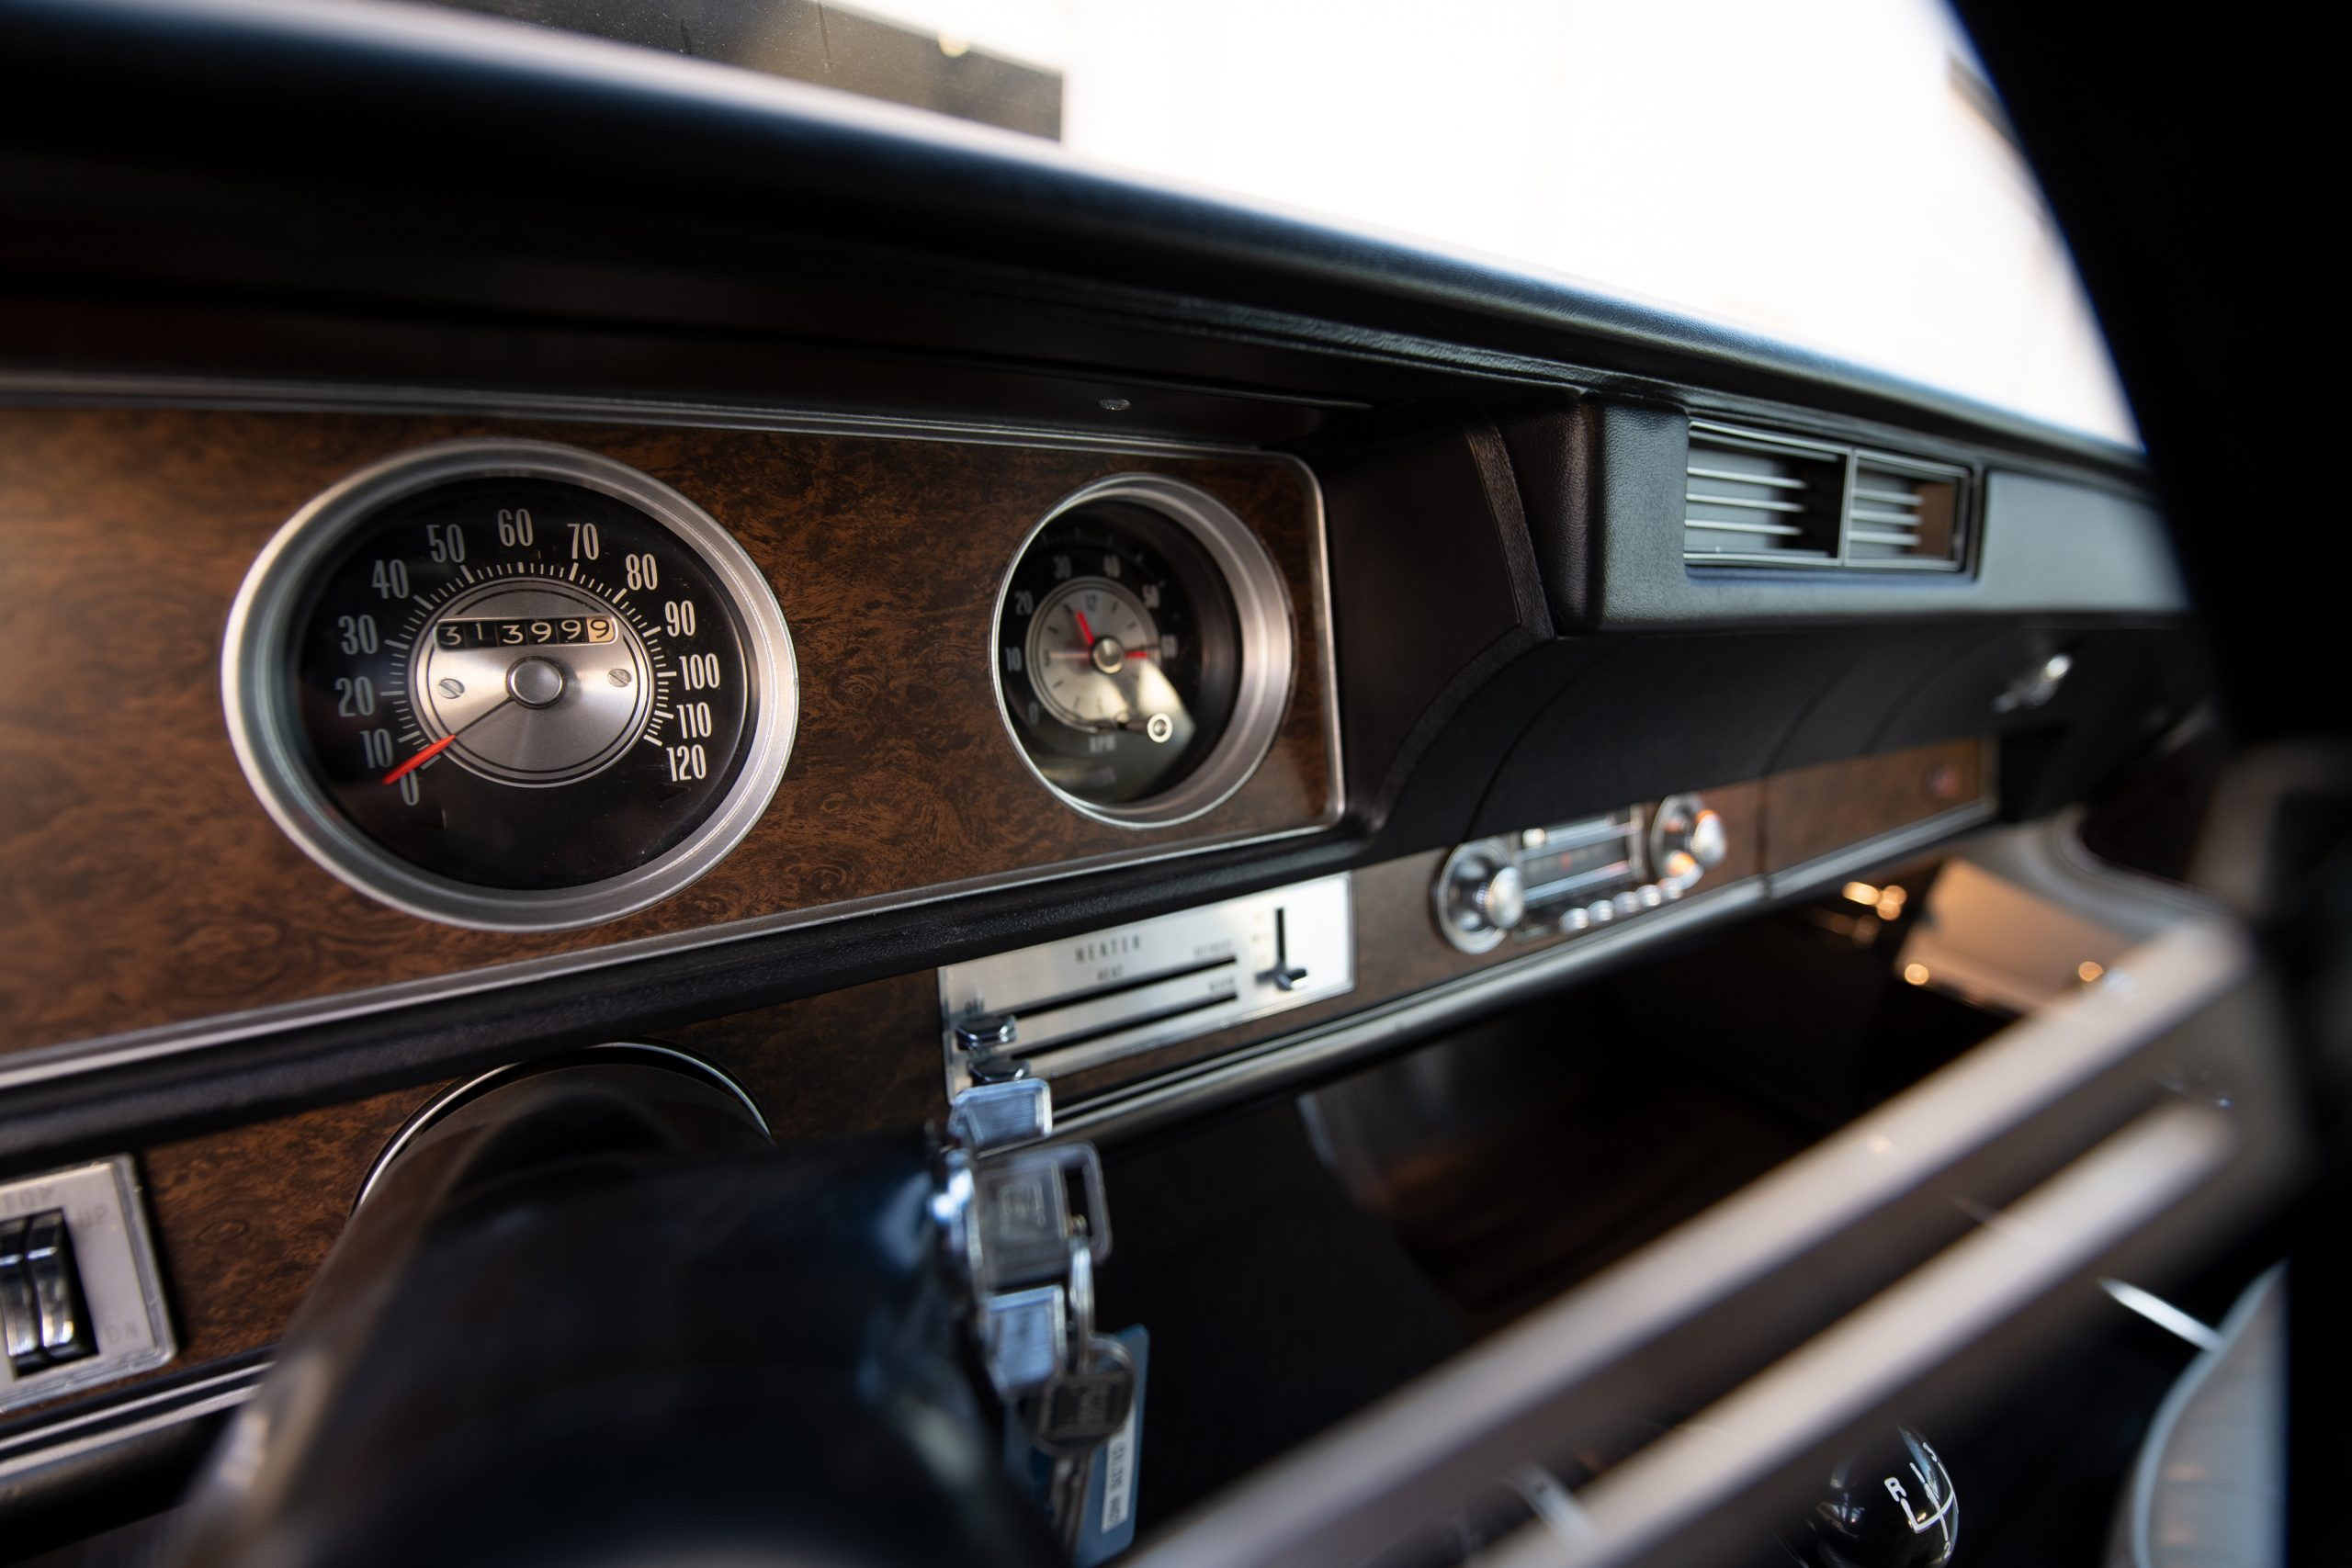 1970 Oldsmobile 442 Convertible Dash Gauges